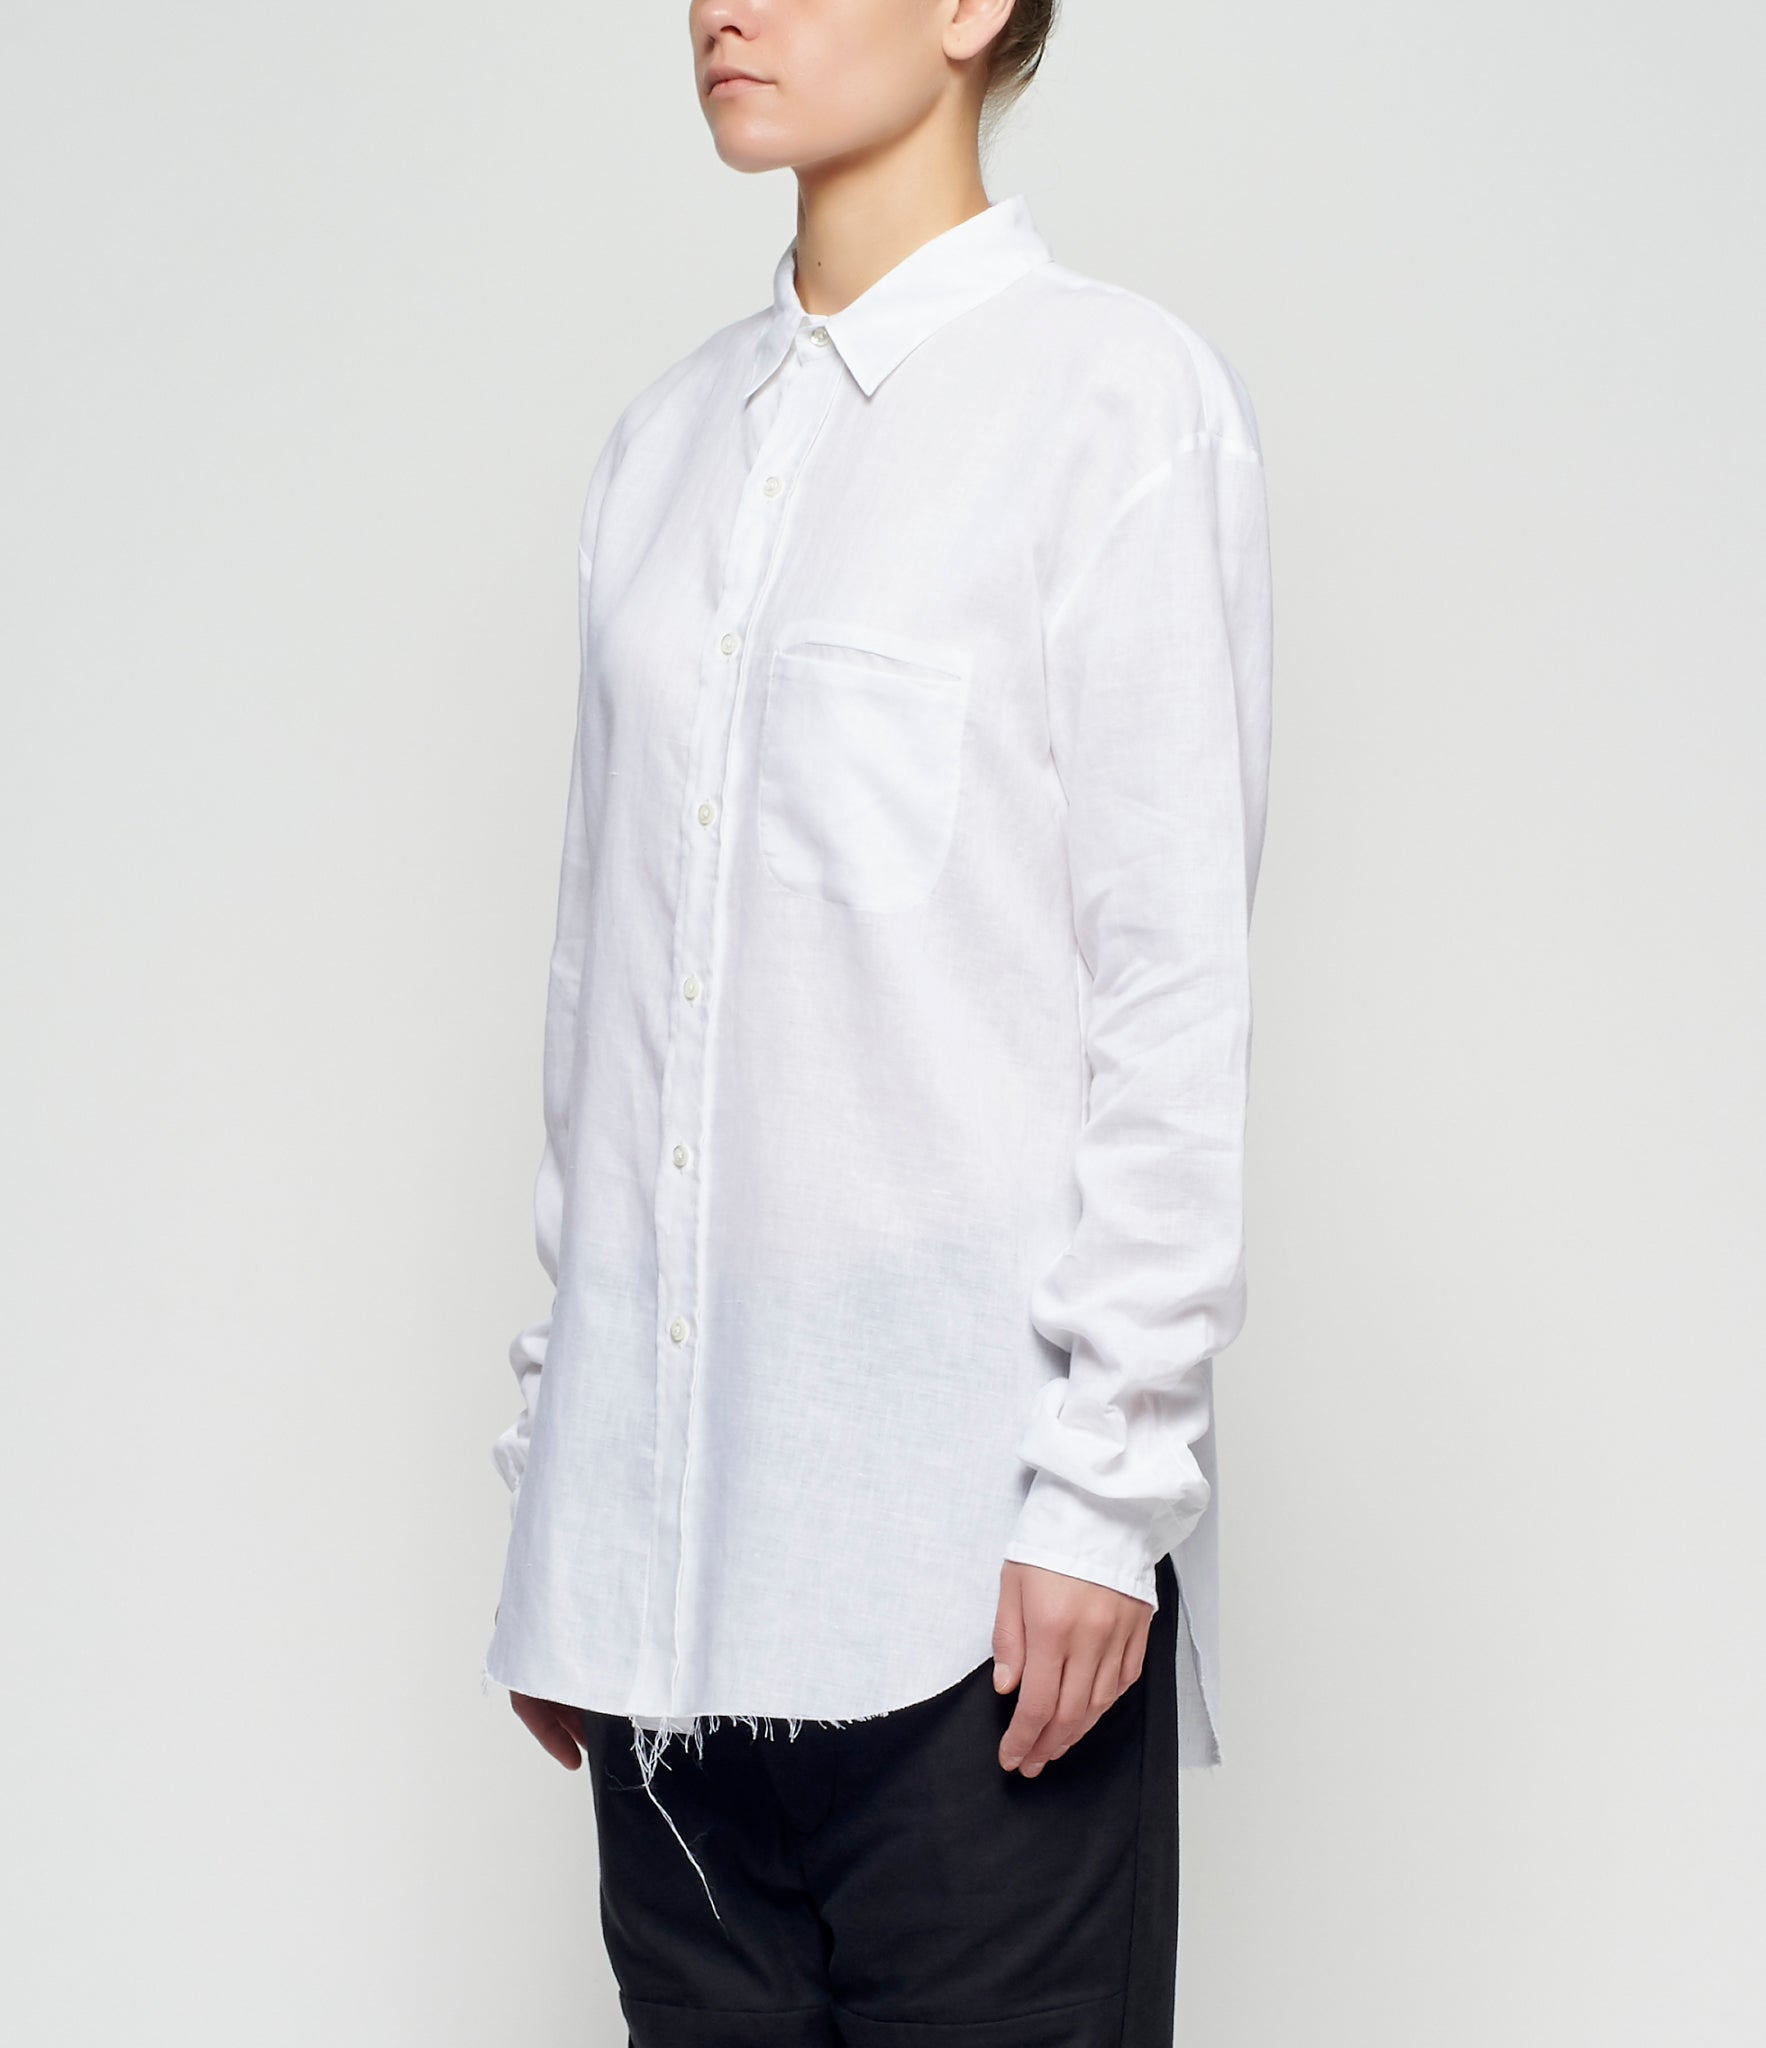 Sagittaire A Girl Graphic Linen Shirt